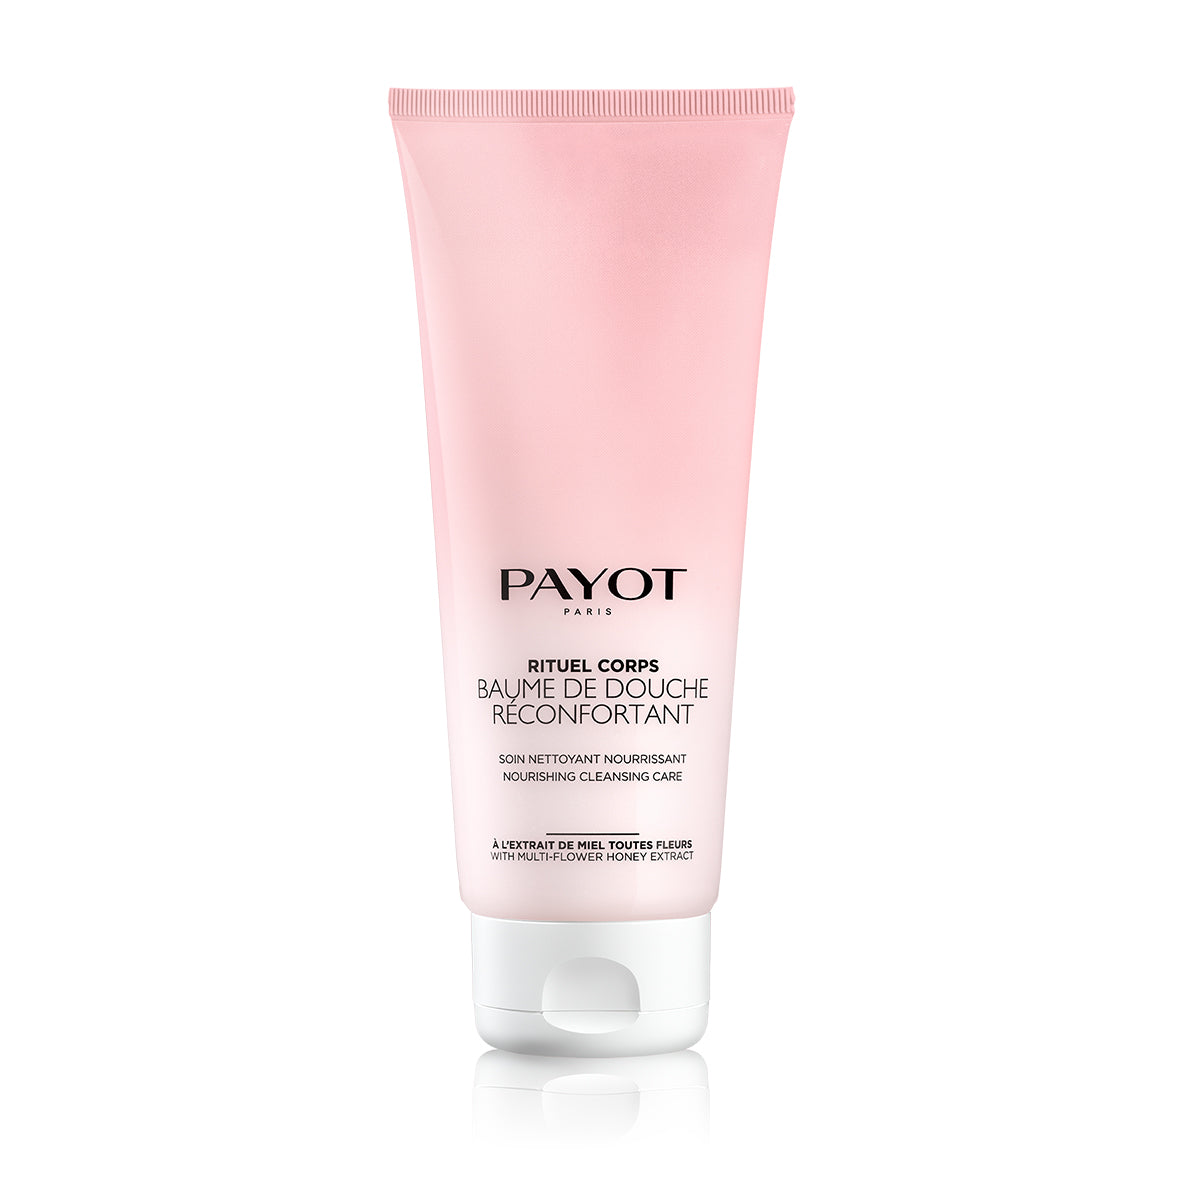 Payot Nourishing Cleansing Care